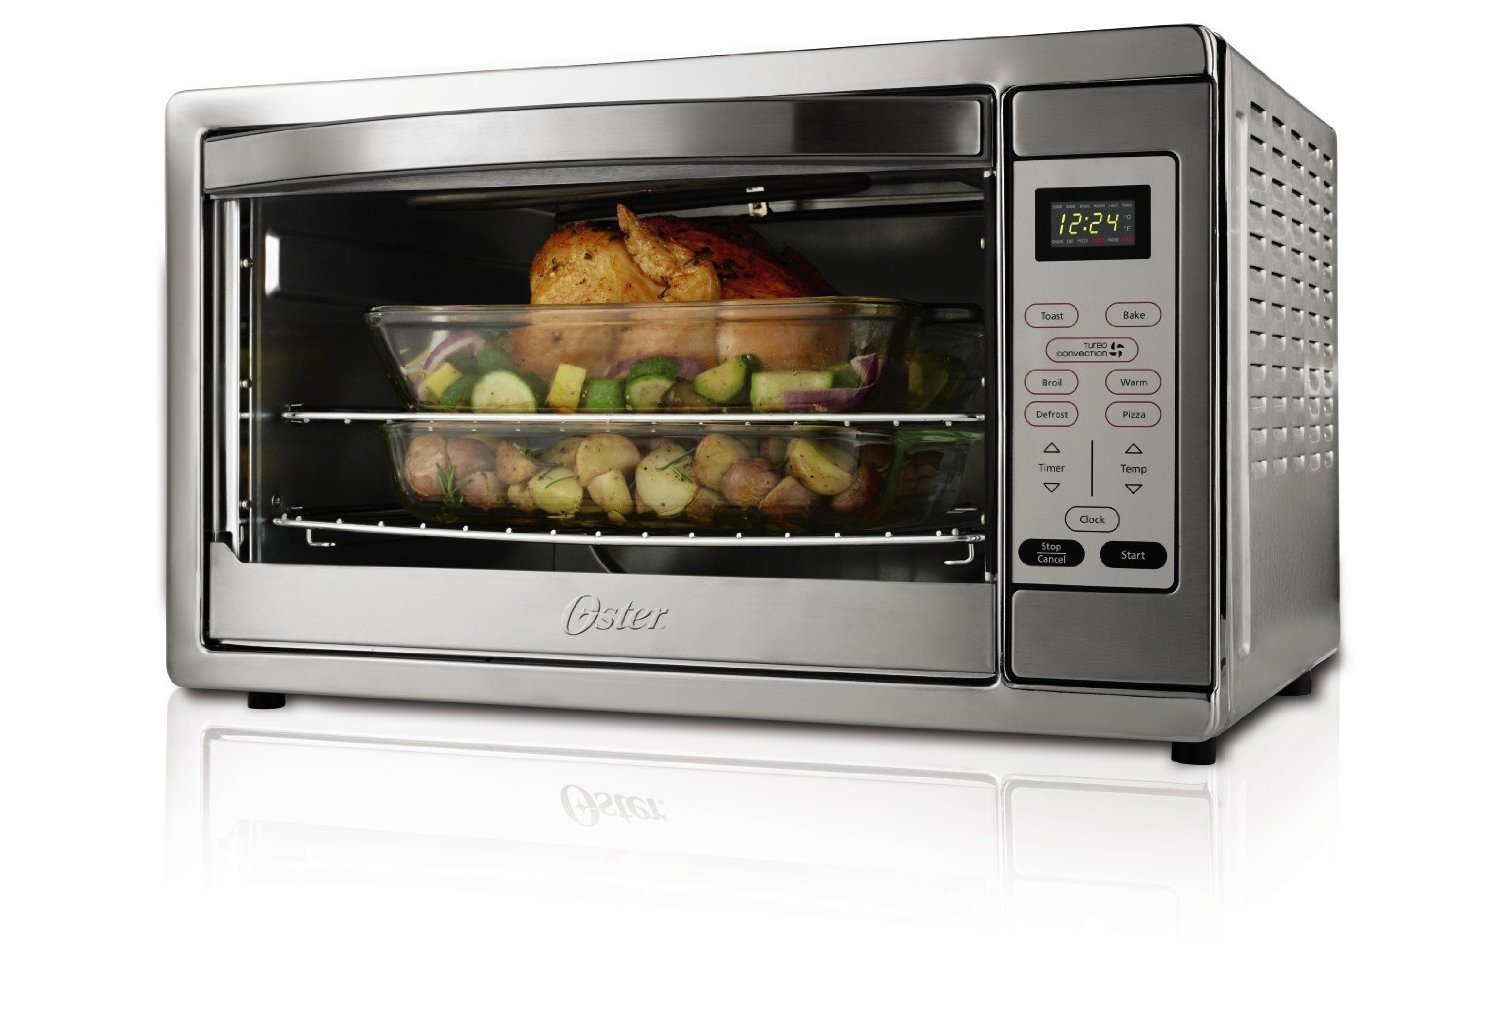 Commercial Grade Countertop Convection Oven : fal FR8000 Deep Fryer Review browngoodstalk.com